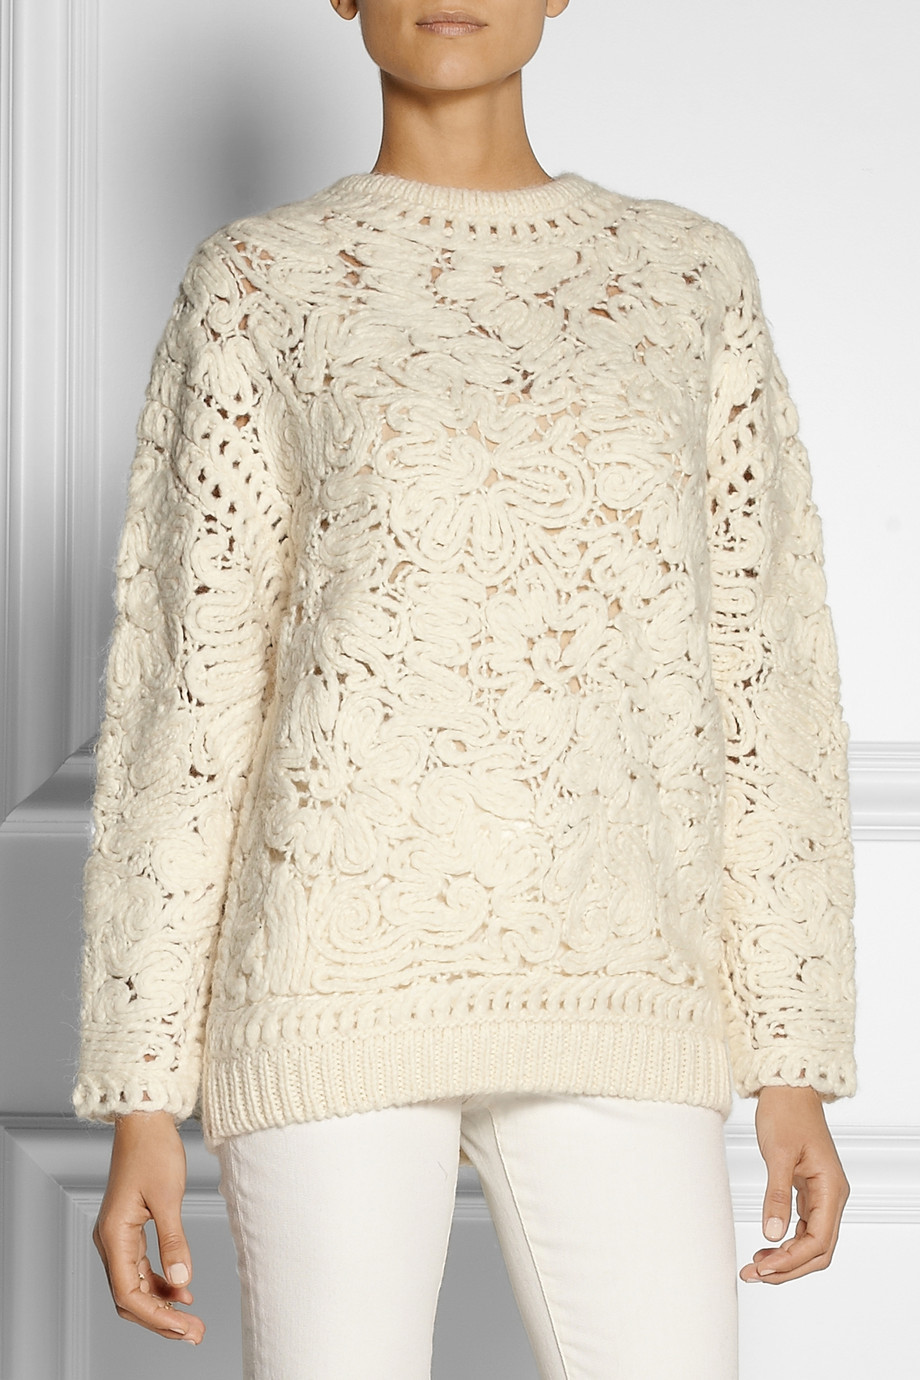 Luxury Lyst Stella Mccartney Crochet Knit Sweater In White White Crochet Sweater Of Wonderful 44 Ideas White Crochet Sweater